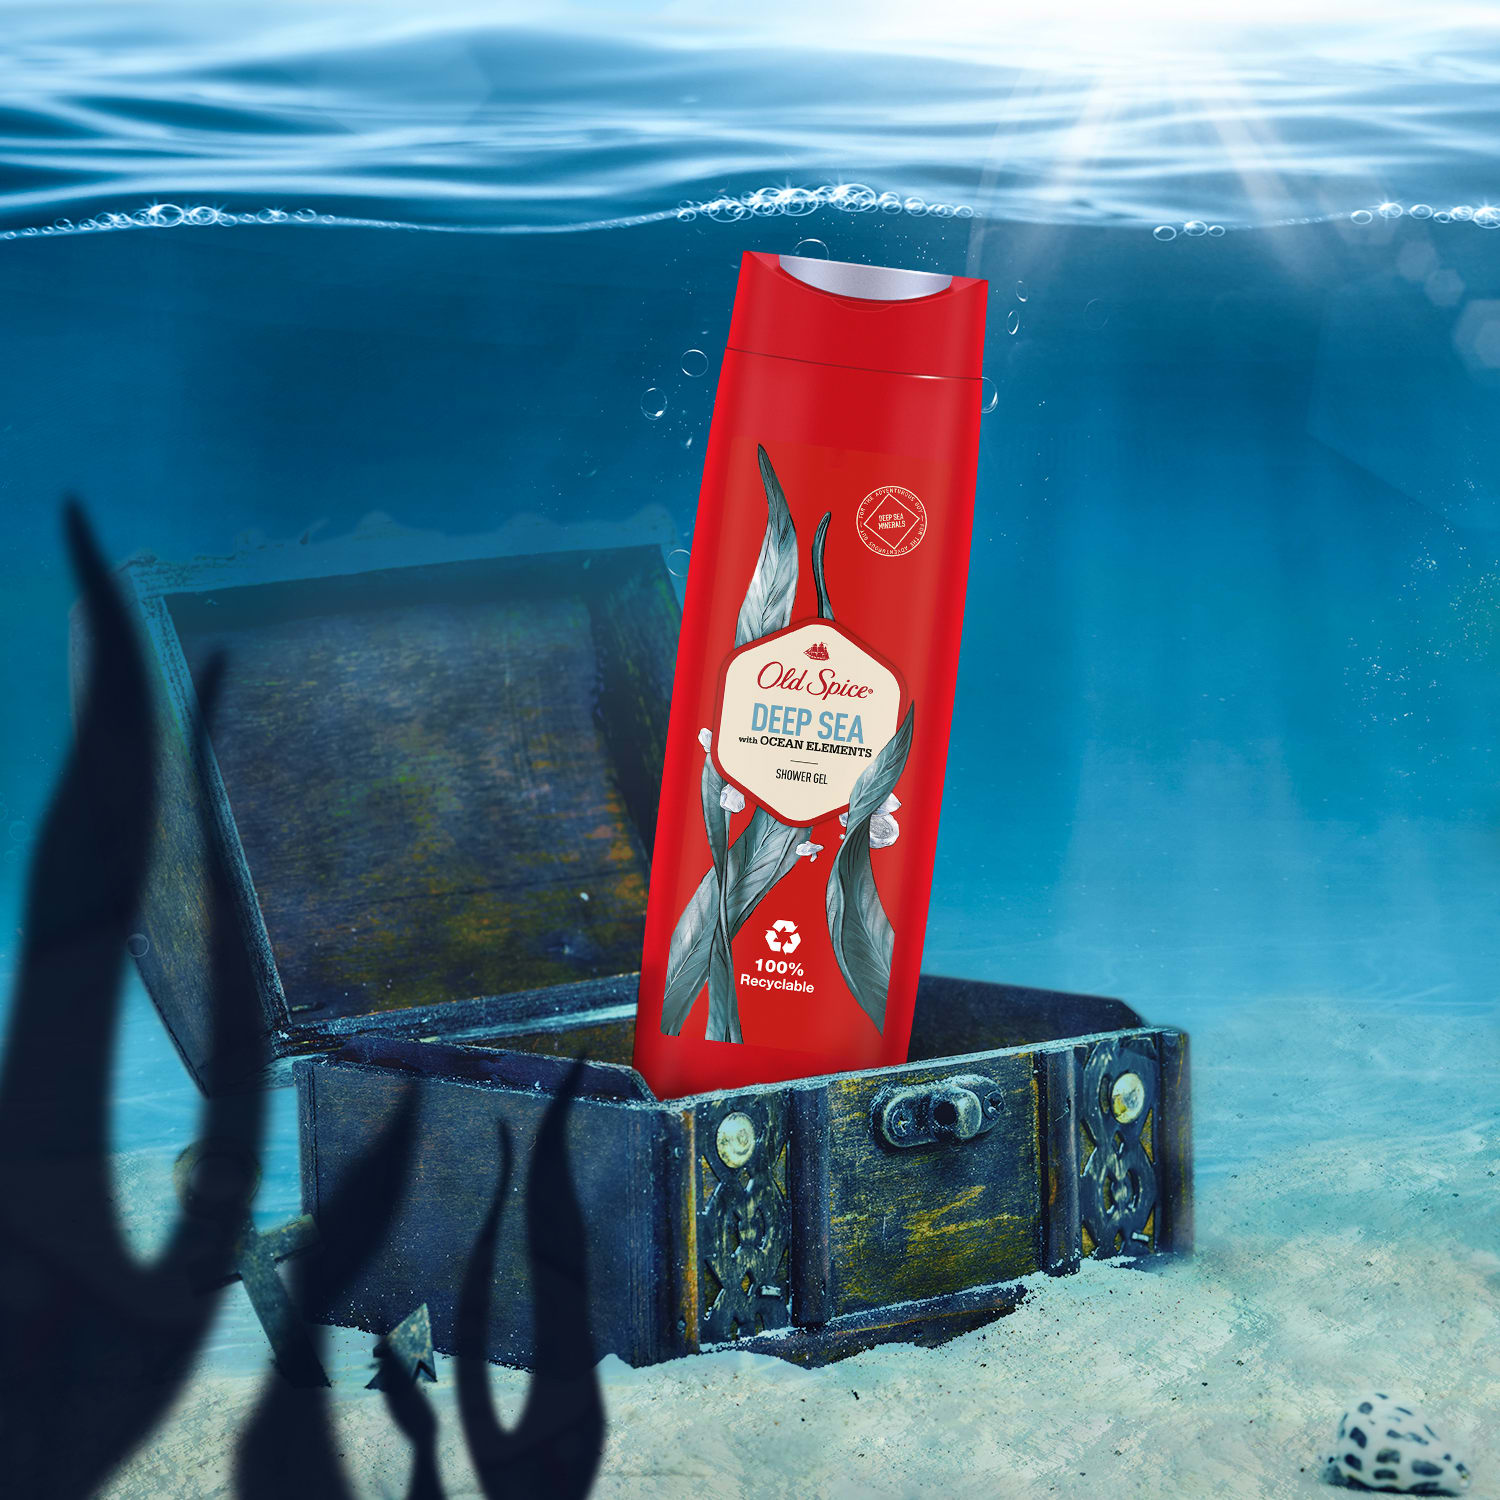 Old-Spice-Redwood-product-banner-DEEP-SEA-GEL-1500x1500px